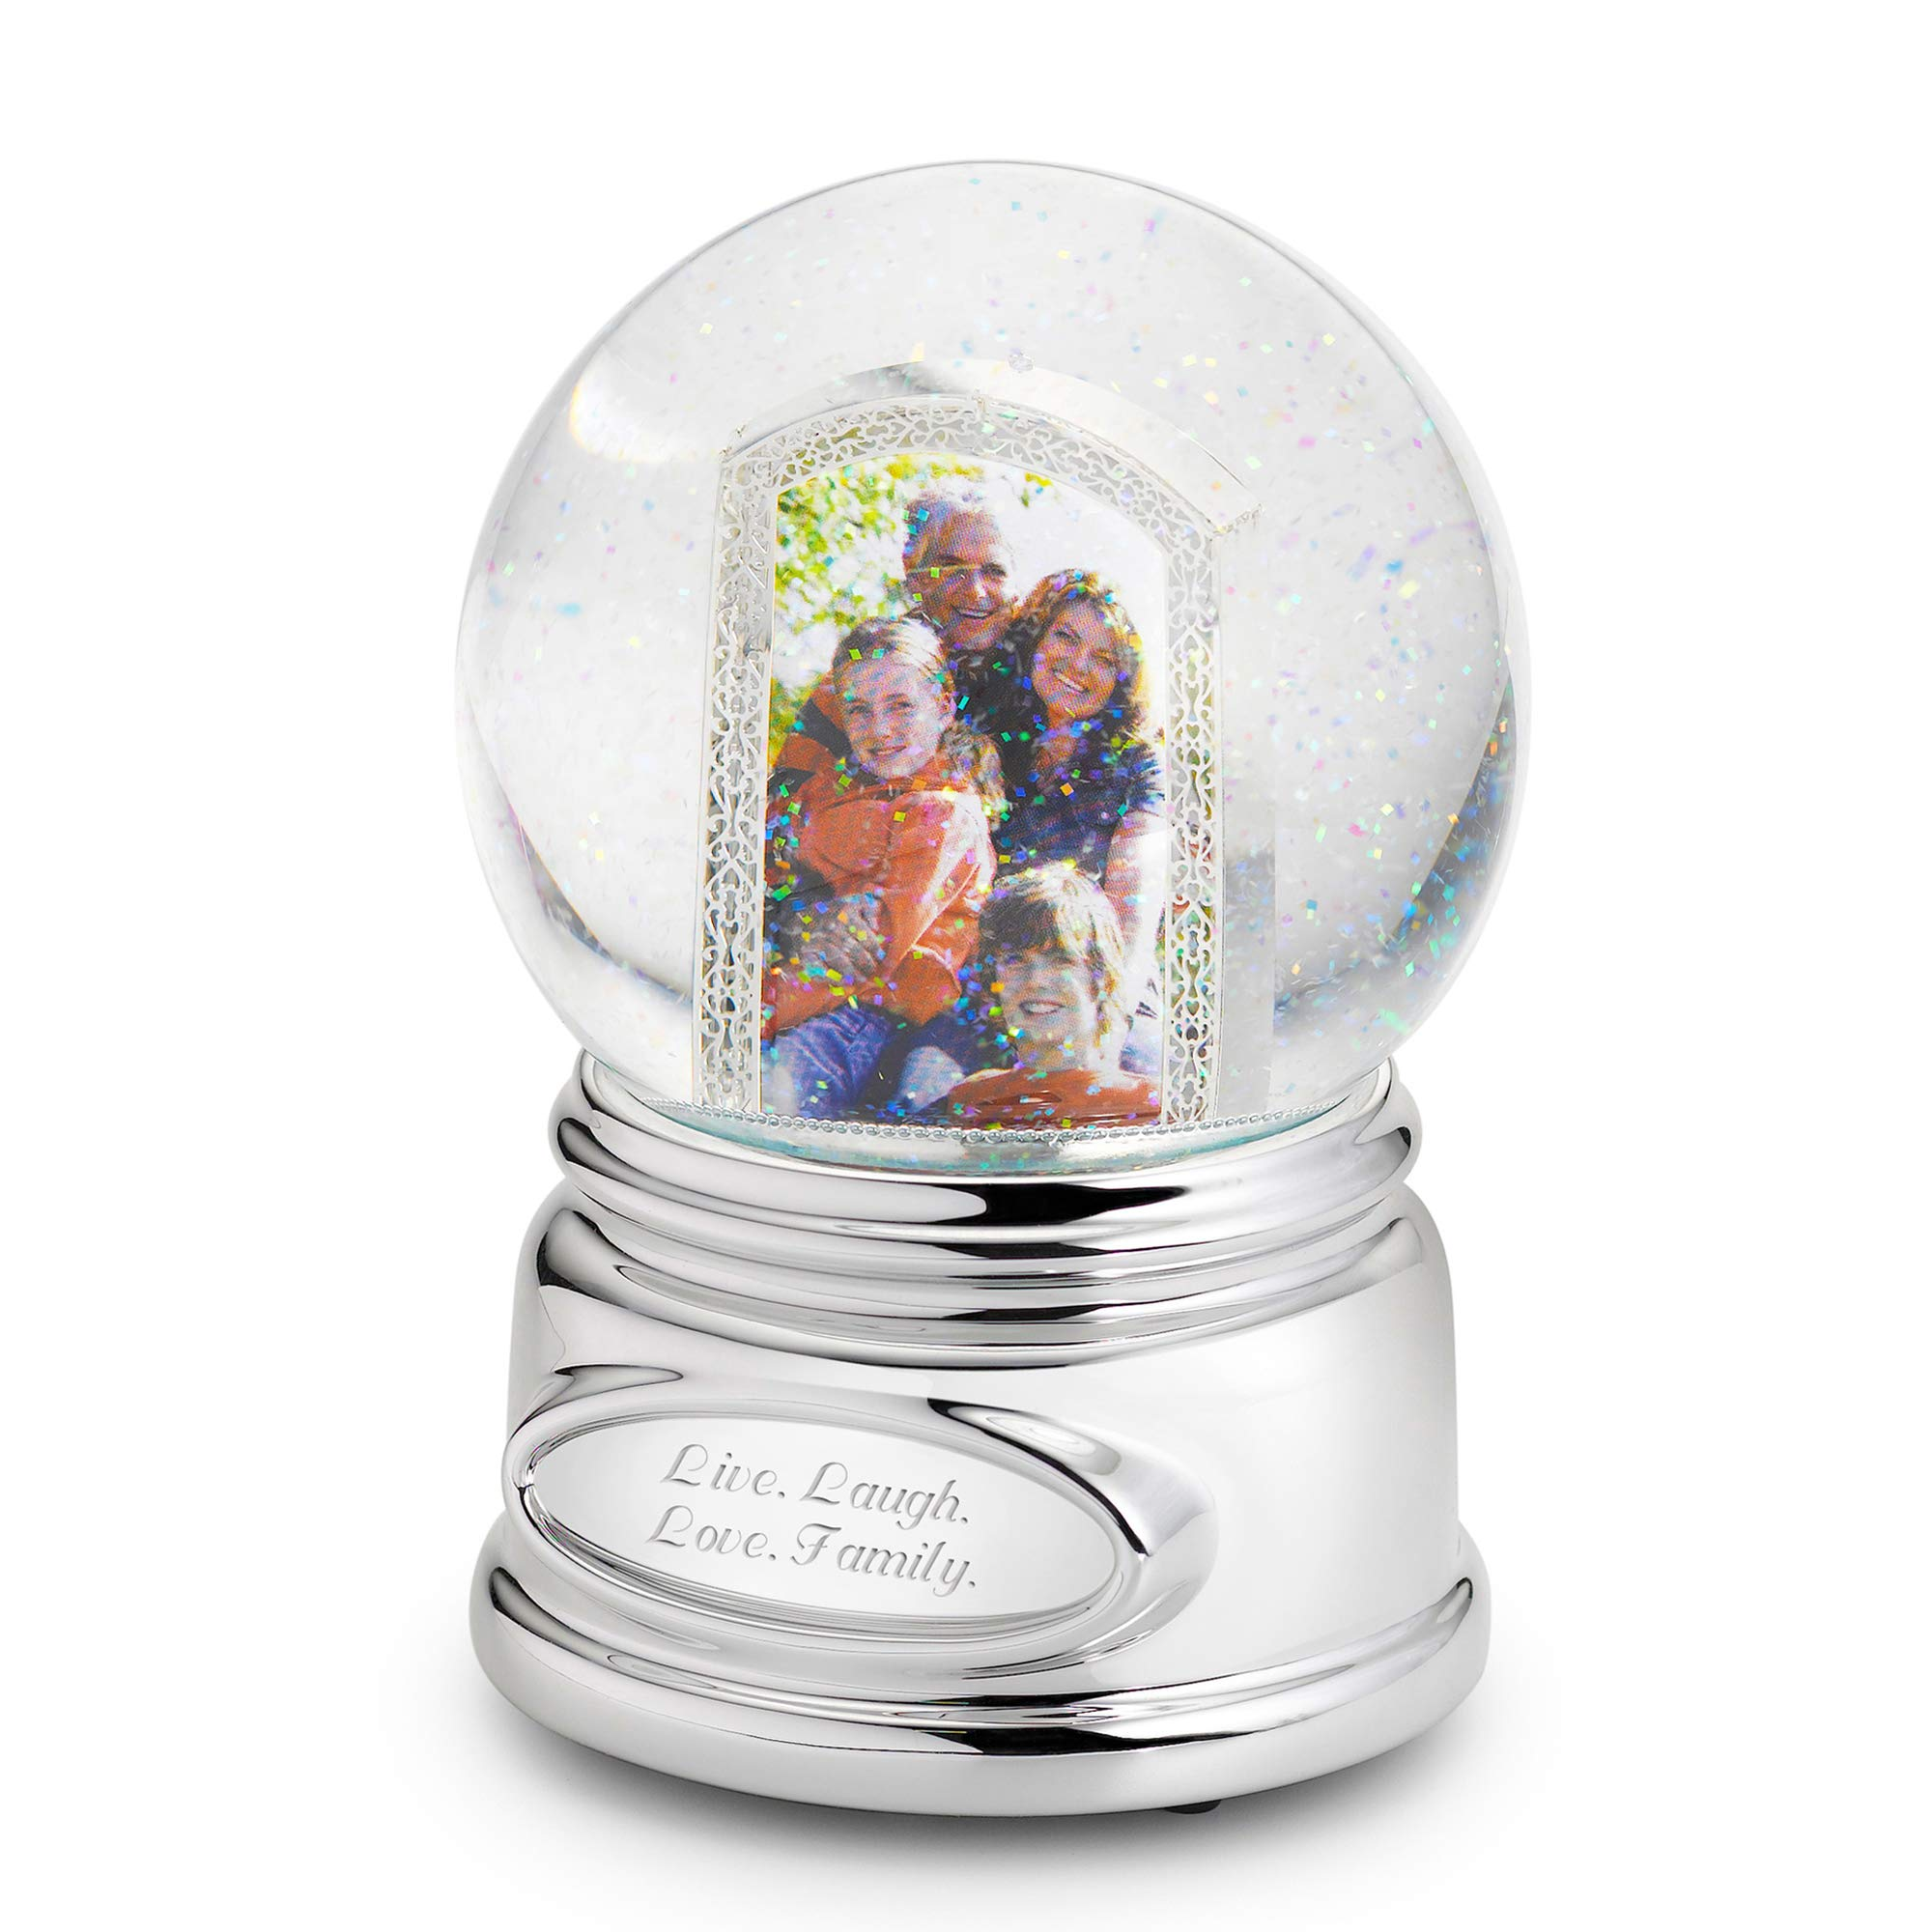 Things Remembered Personalized Picture Perfect Musical Photo Snow Globe with Engraving Included by Things Remembered